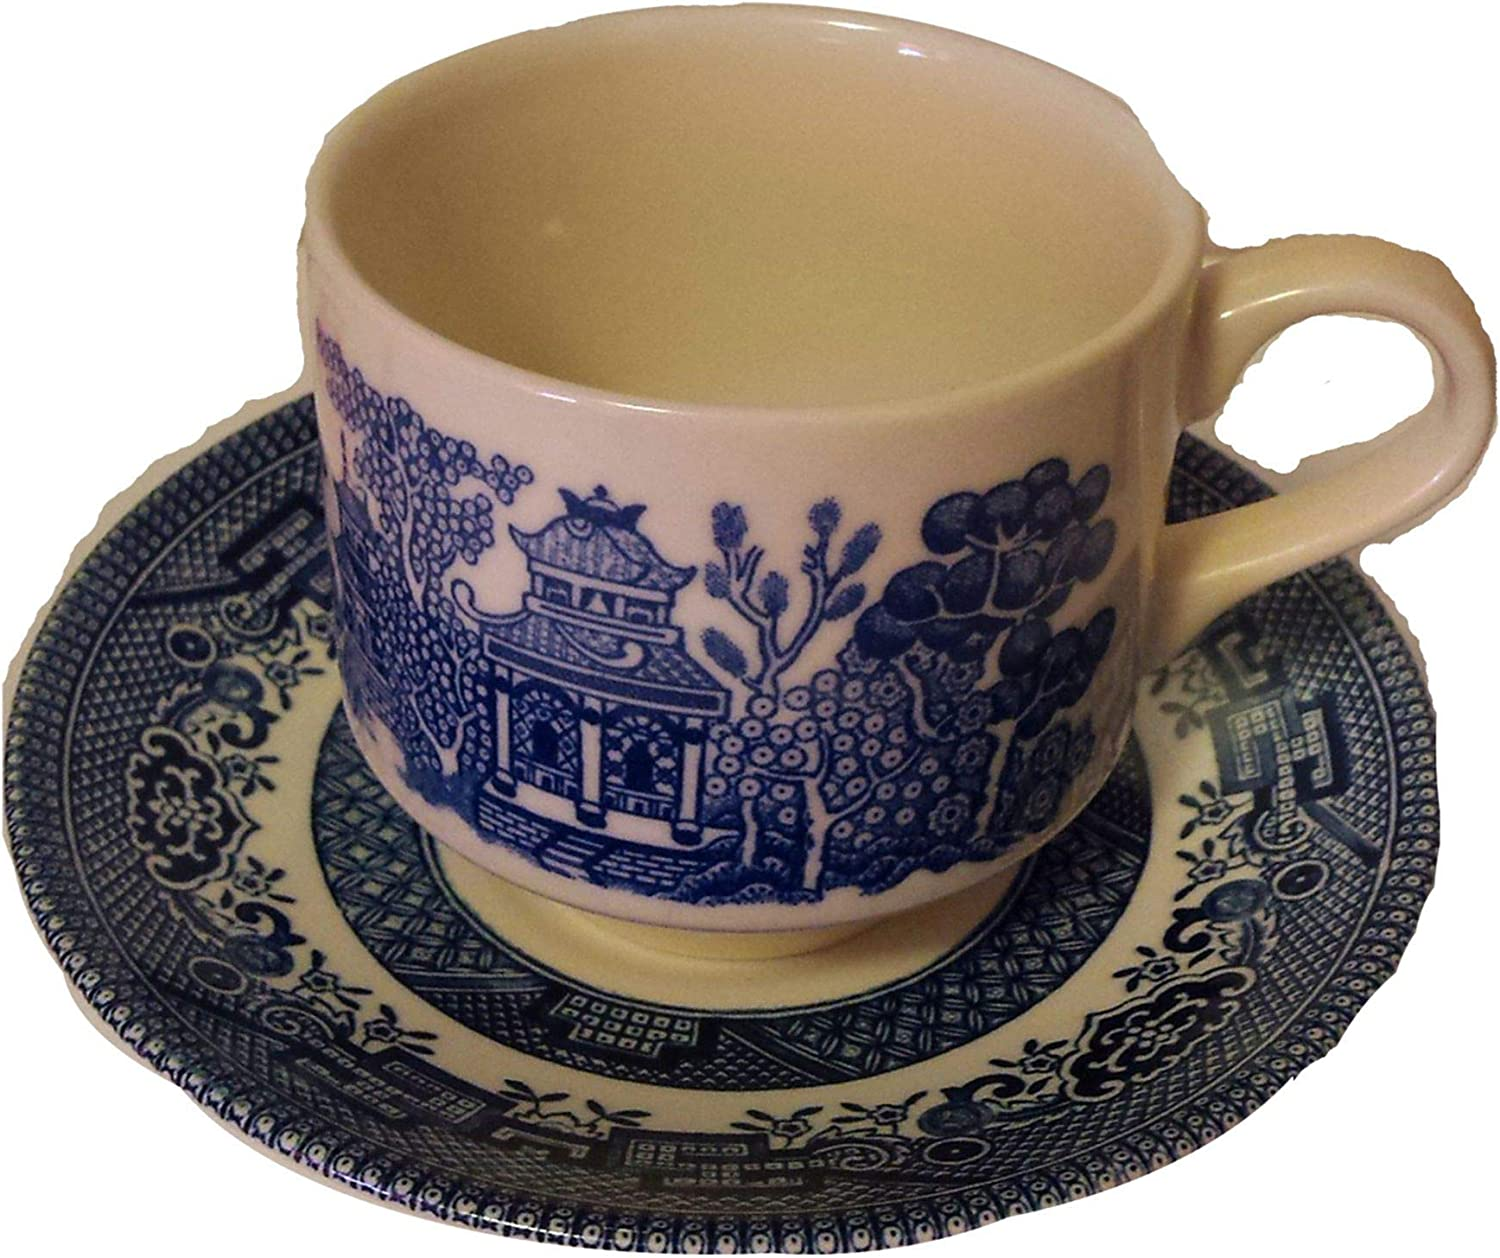 Churchill Made in England Blue Max 54% OFF Animer and price revision Willow Saucer Pattern Cup Tea